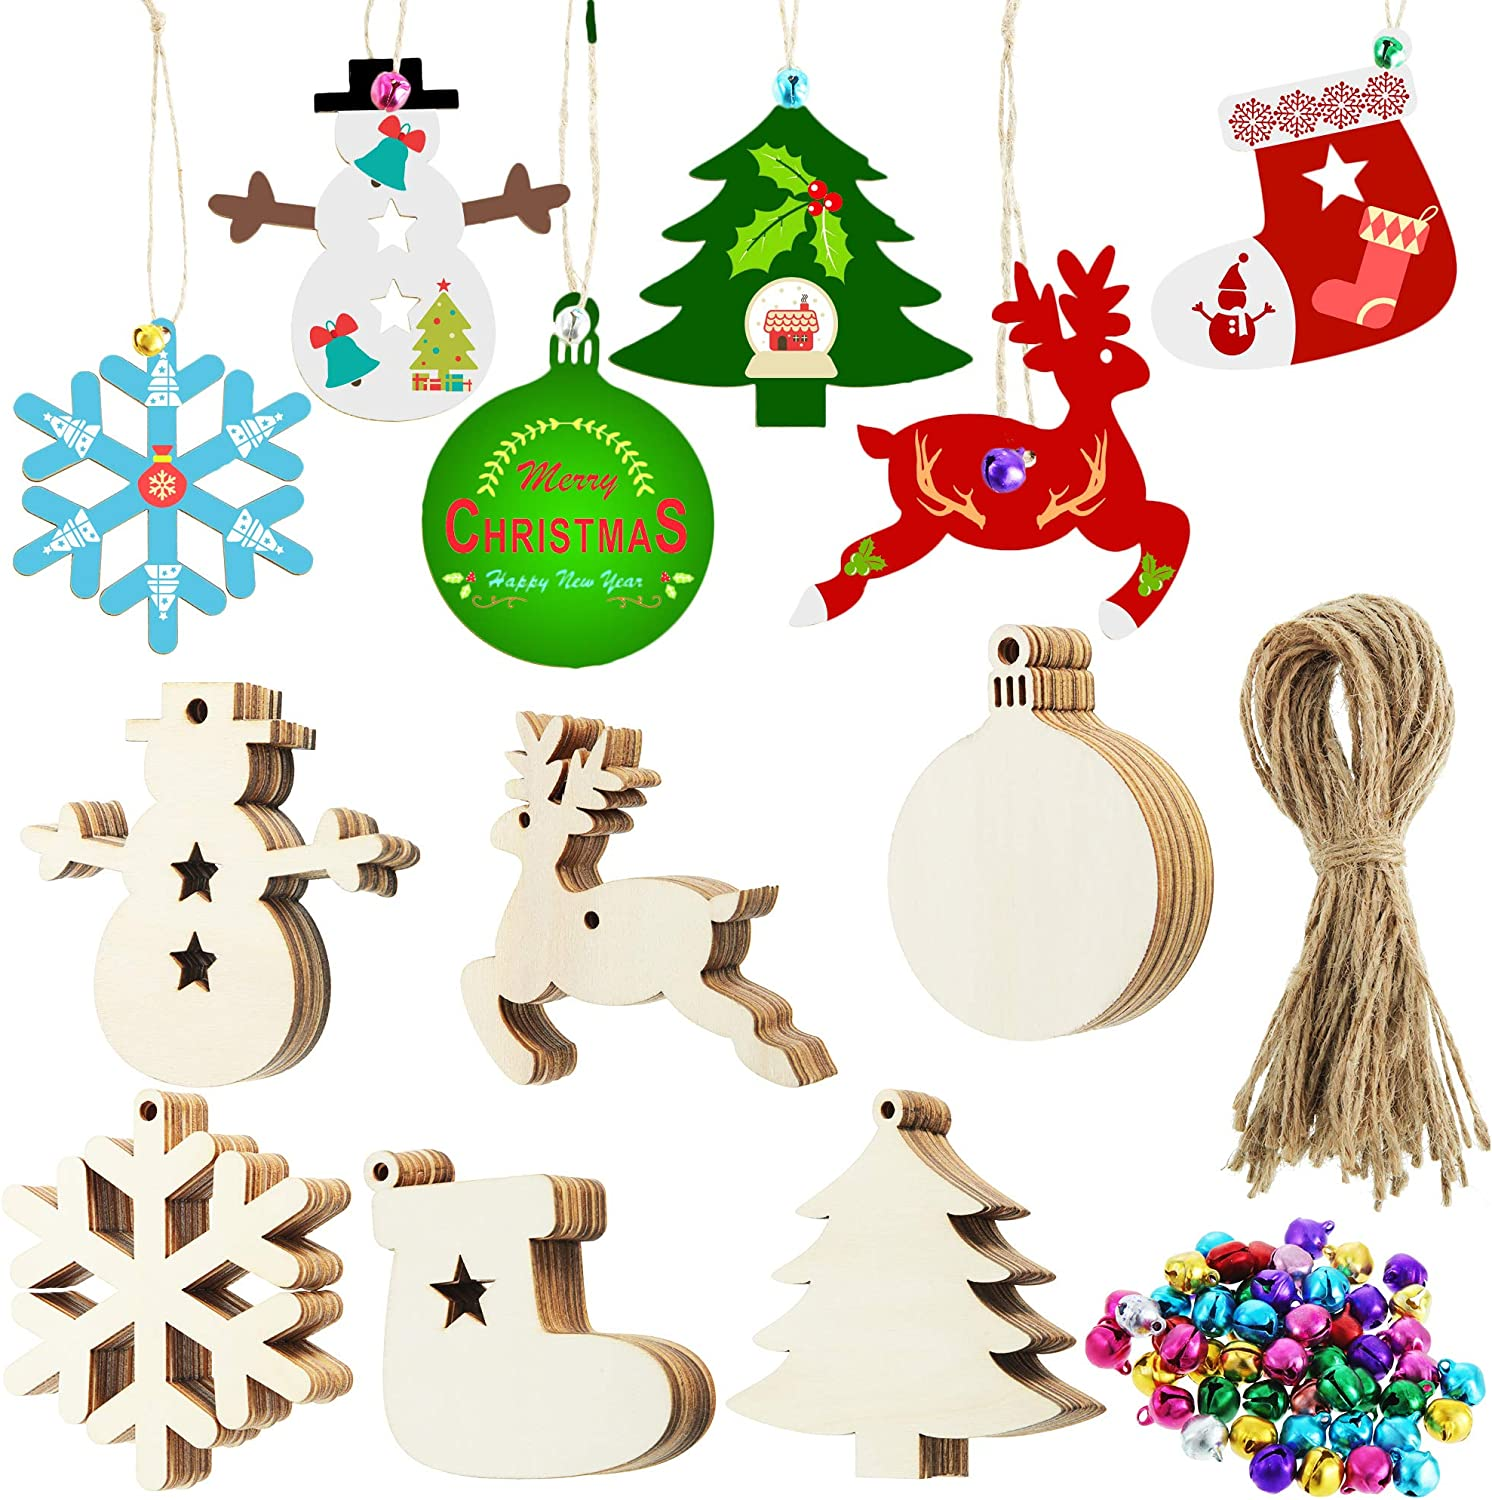 180 Pieces Christmas Ornaments Set, Unfinished Wood Ornaments Christmas Tree Snowflake Snowmen Boots Reindeer Light Bulb Wooden Decorations with Colorful Bells and Rope for Home Party Hanging Decor